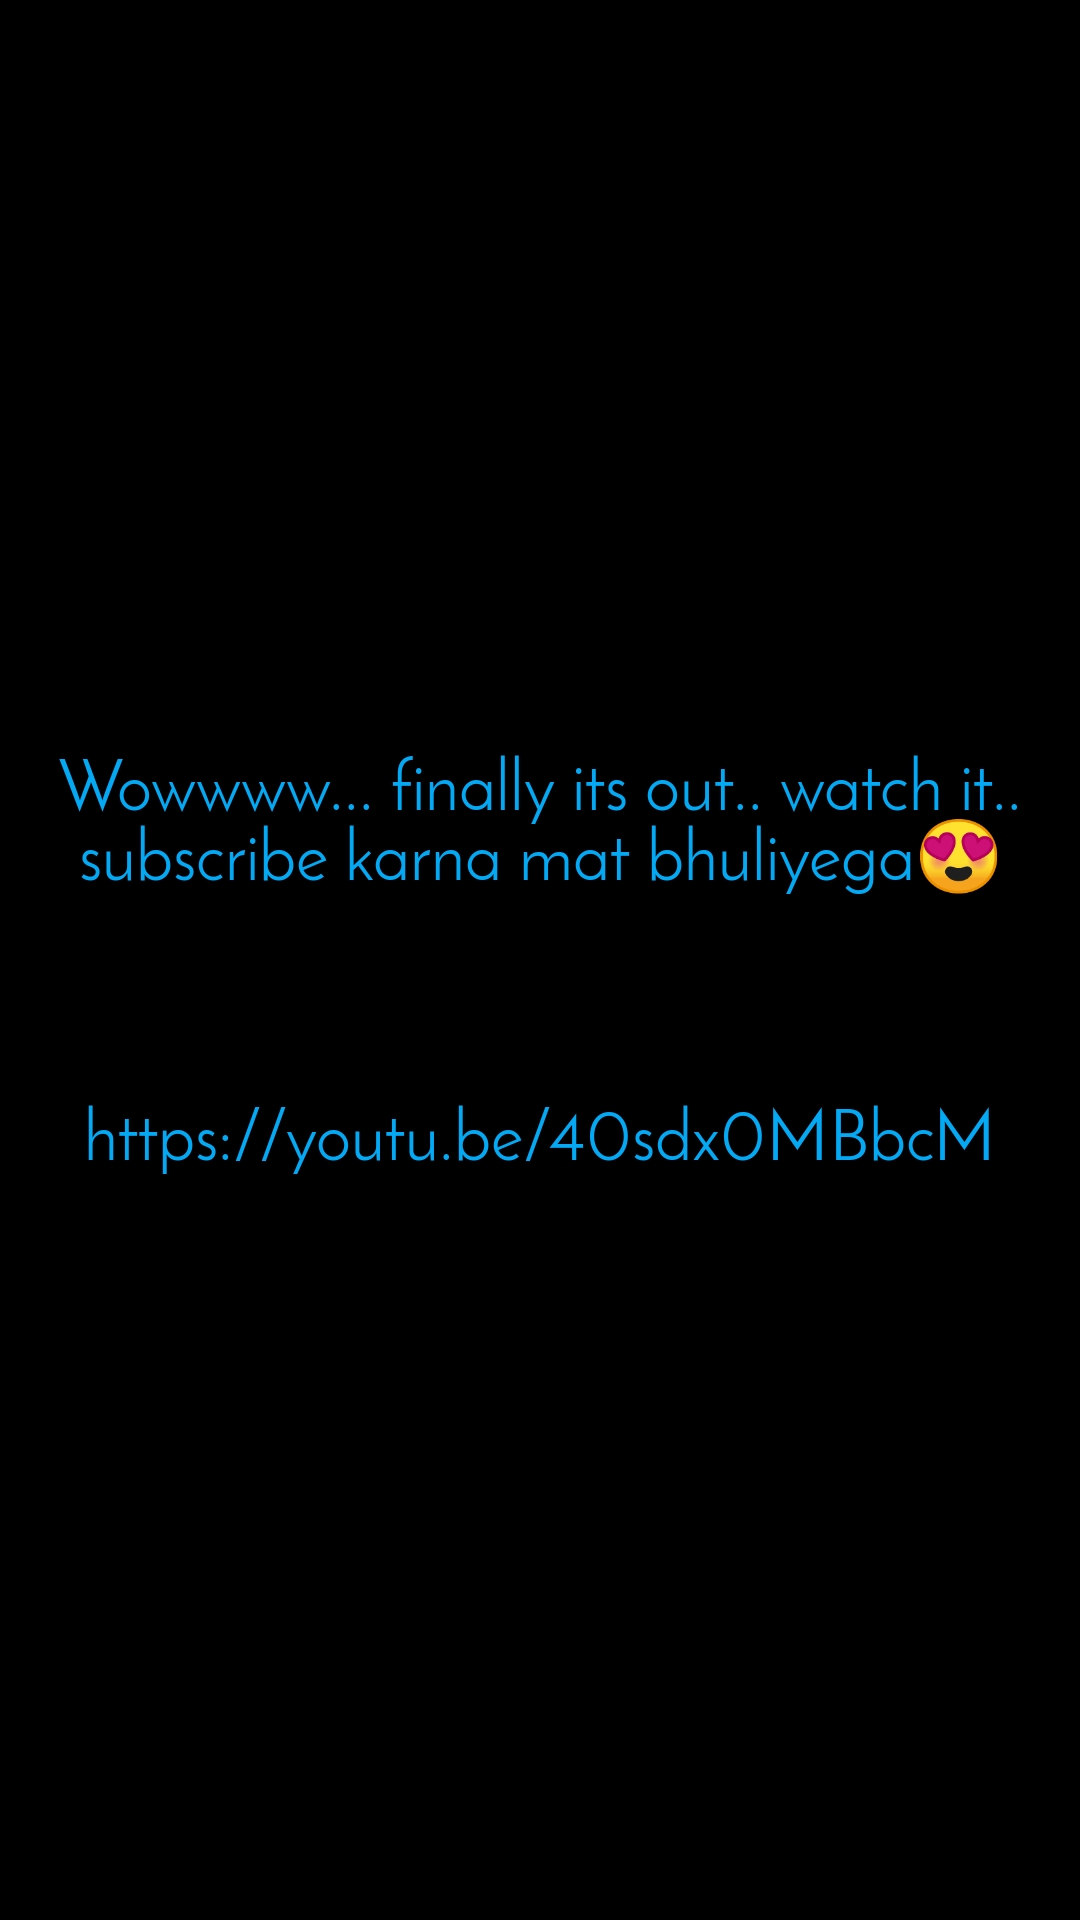 Wowwww... finally its out.. watch it.. subscribe karna mat bhuliyega😍    https://youtu.be/40sdx0MBbcM